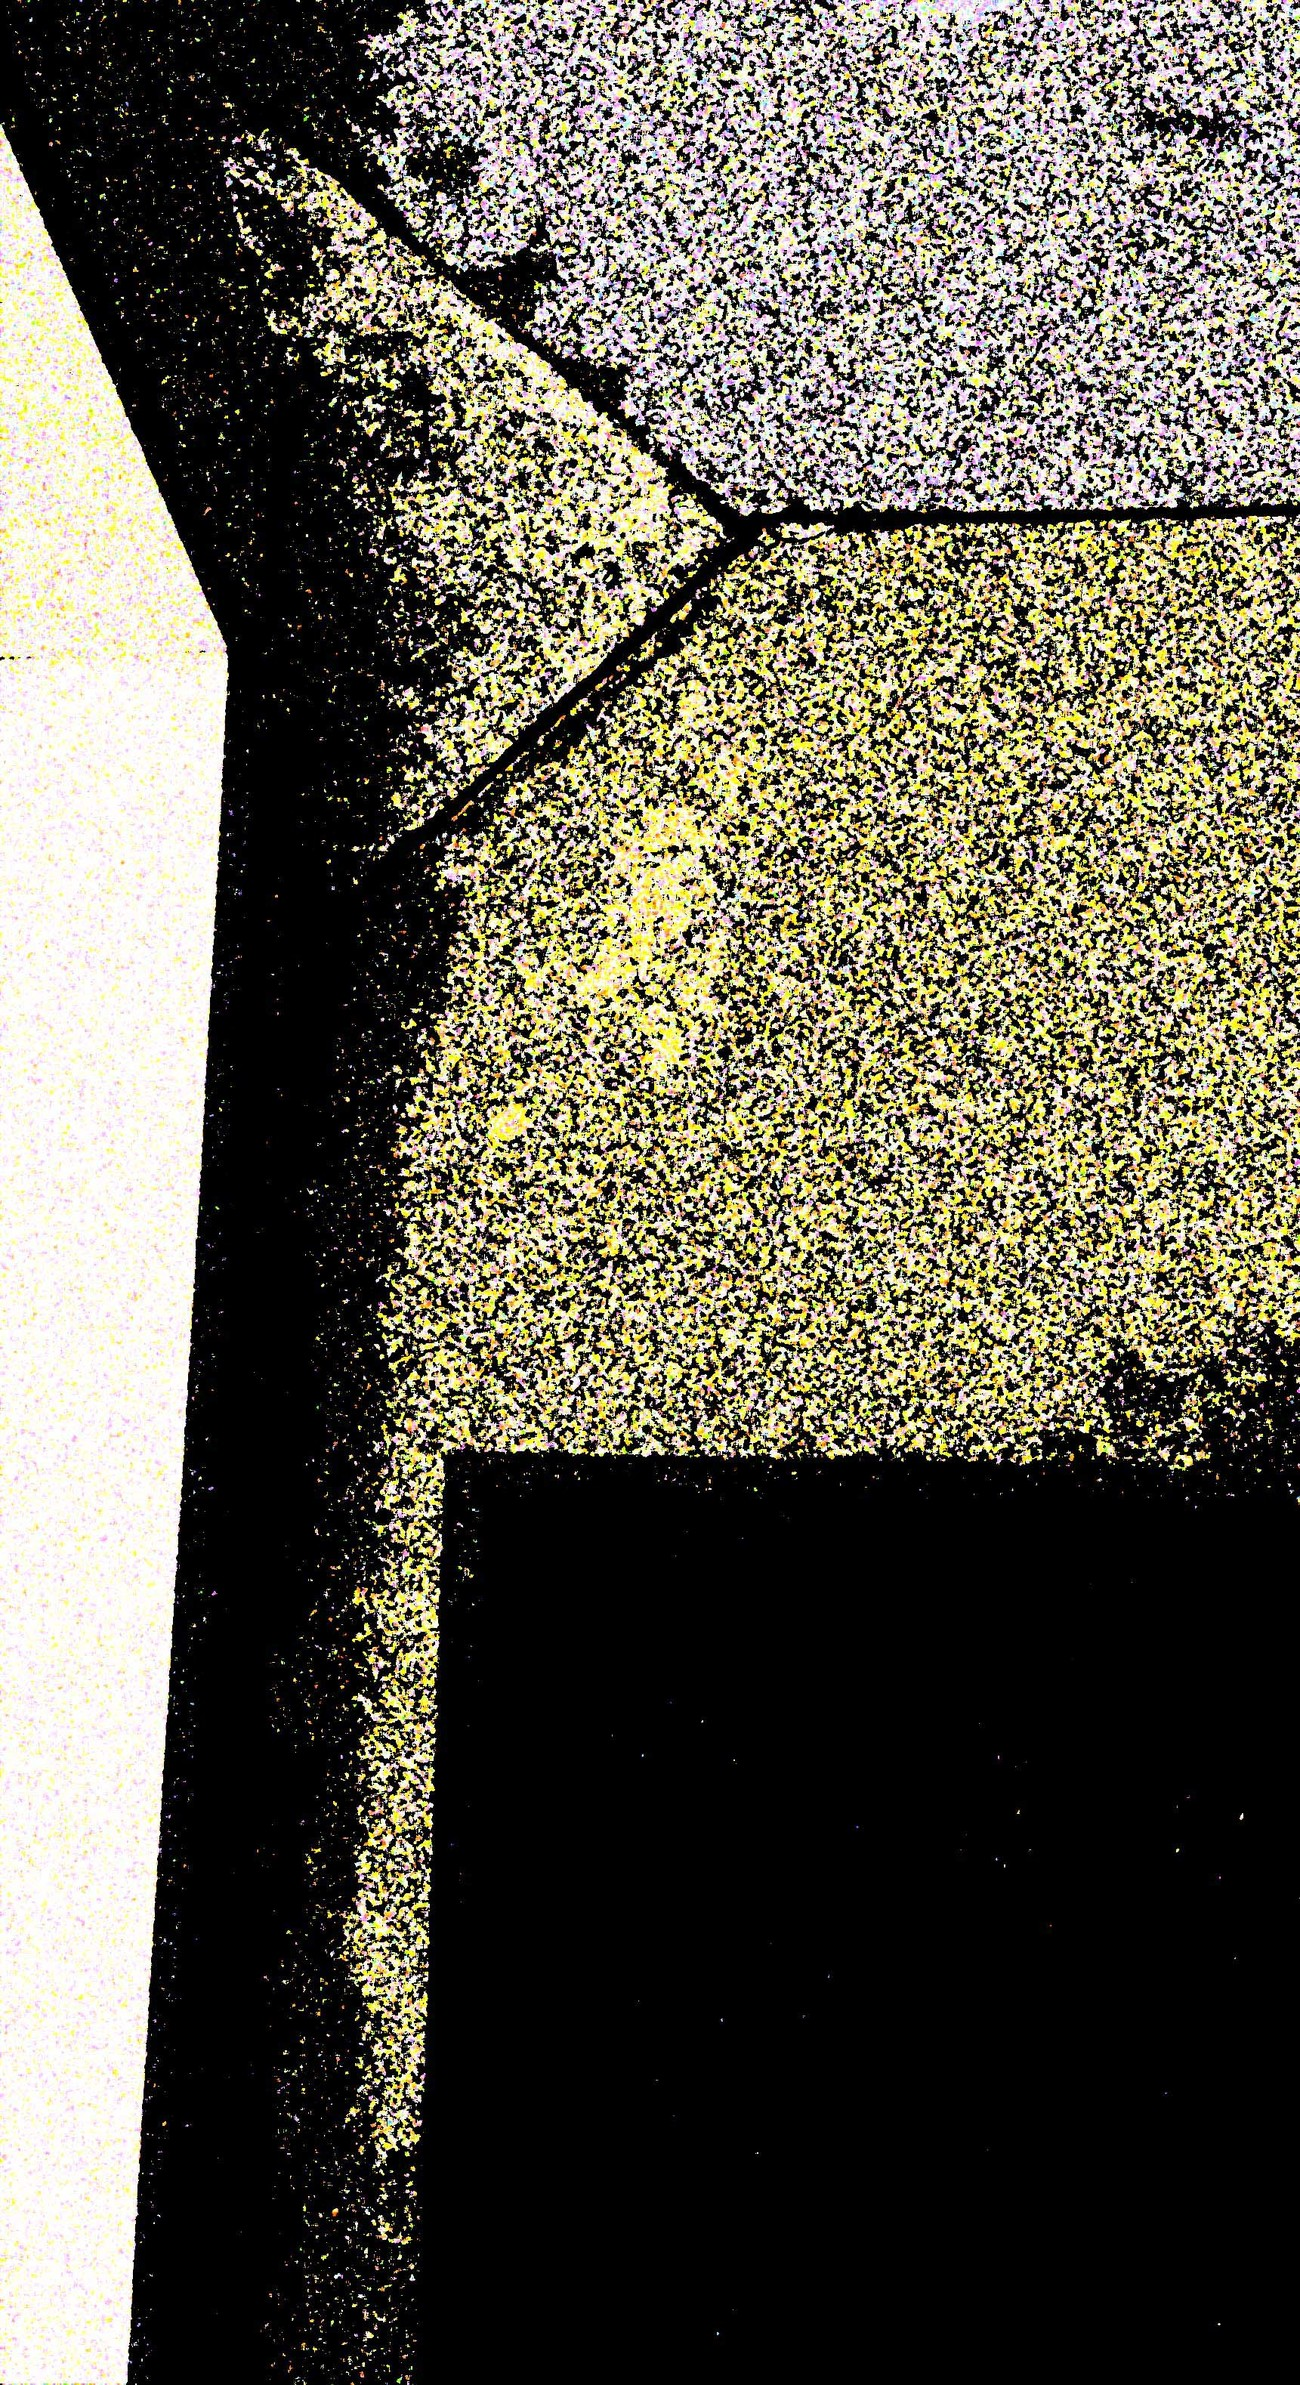 Abstraction #0704